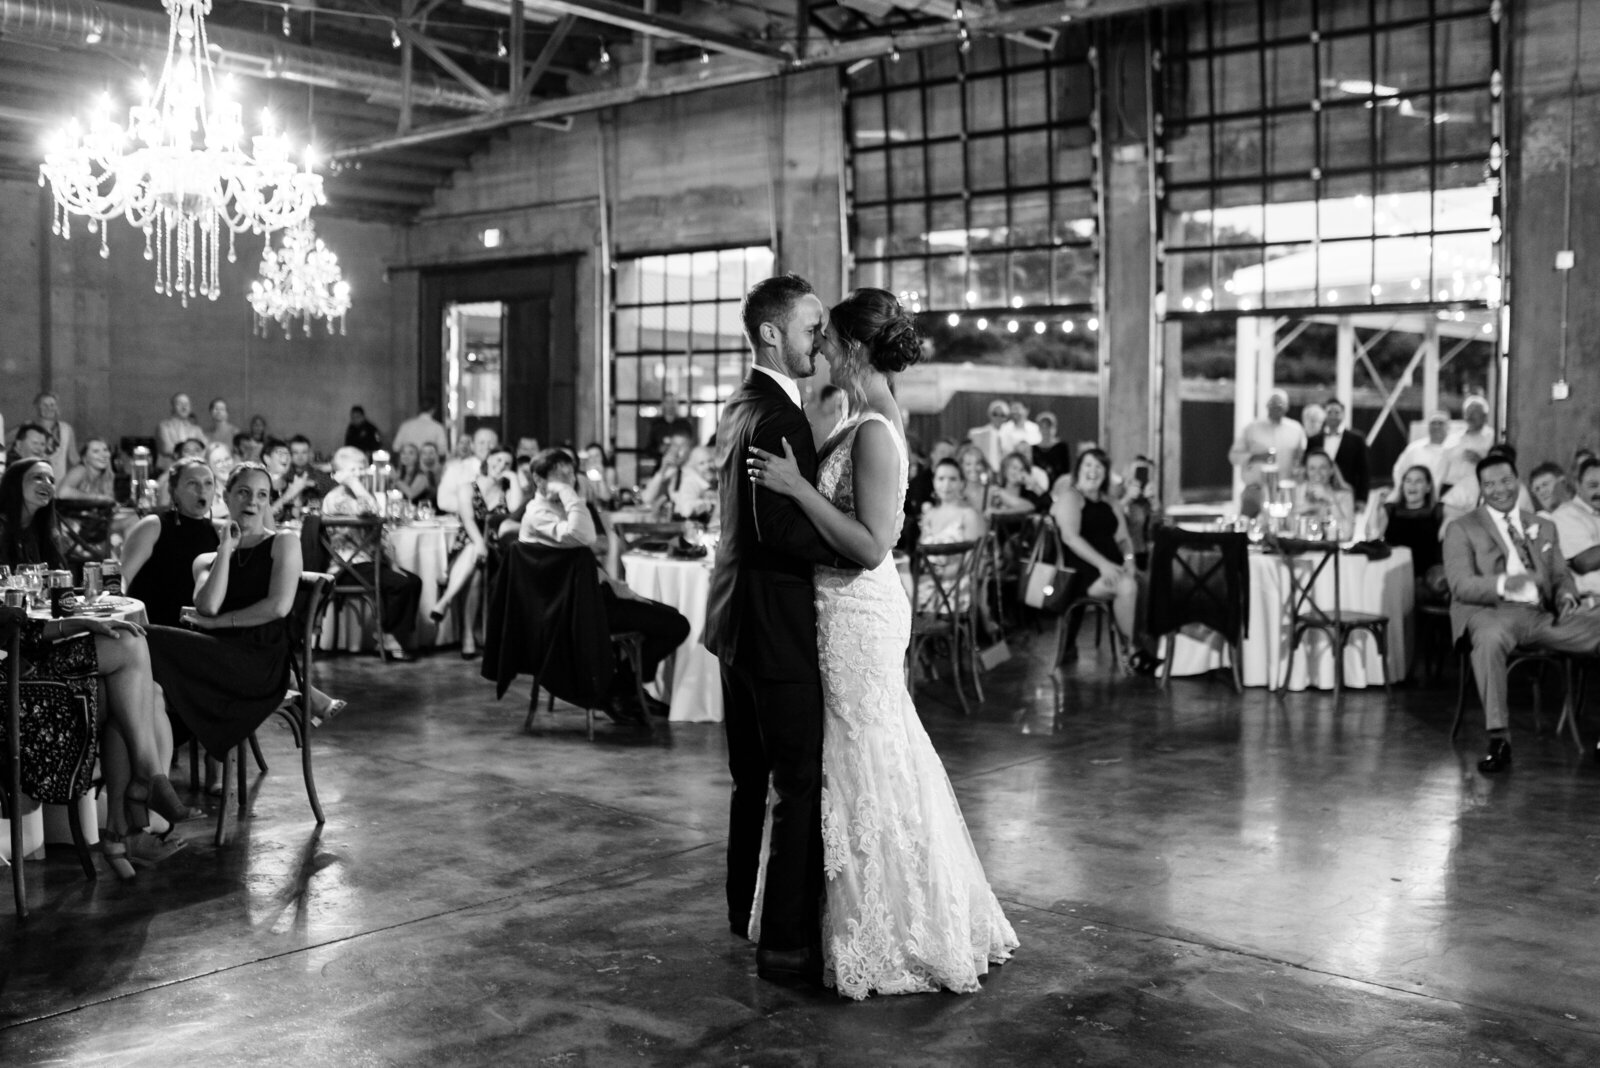 wichita-kansas-wedding-photographer-kyann-raye-photography-83